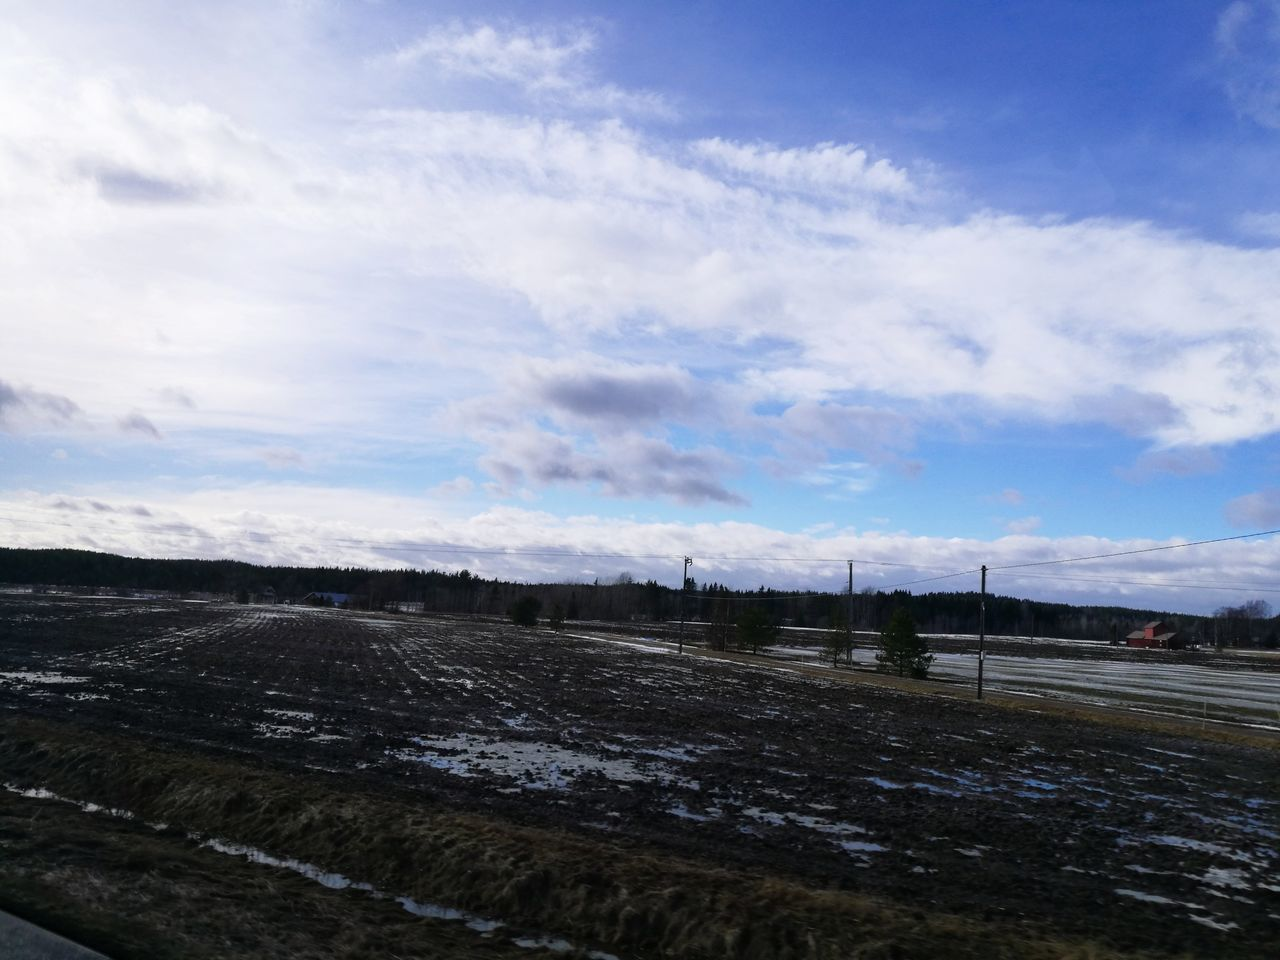 Cloud - Sky Outdoors Nature Sky Sea Beauty In Nature Water Beach No People Day Finland Finlandia Finland_photolovers Finlandlovers Nature Tree Bus Beauty In Nature Forest